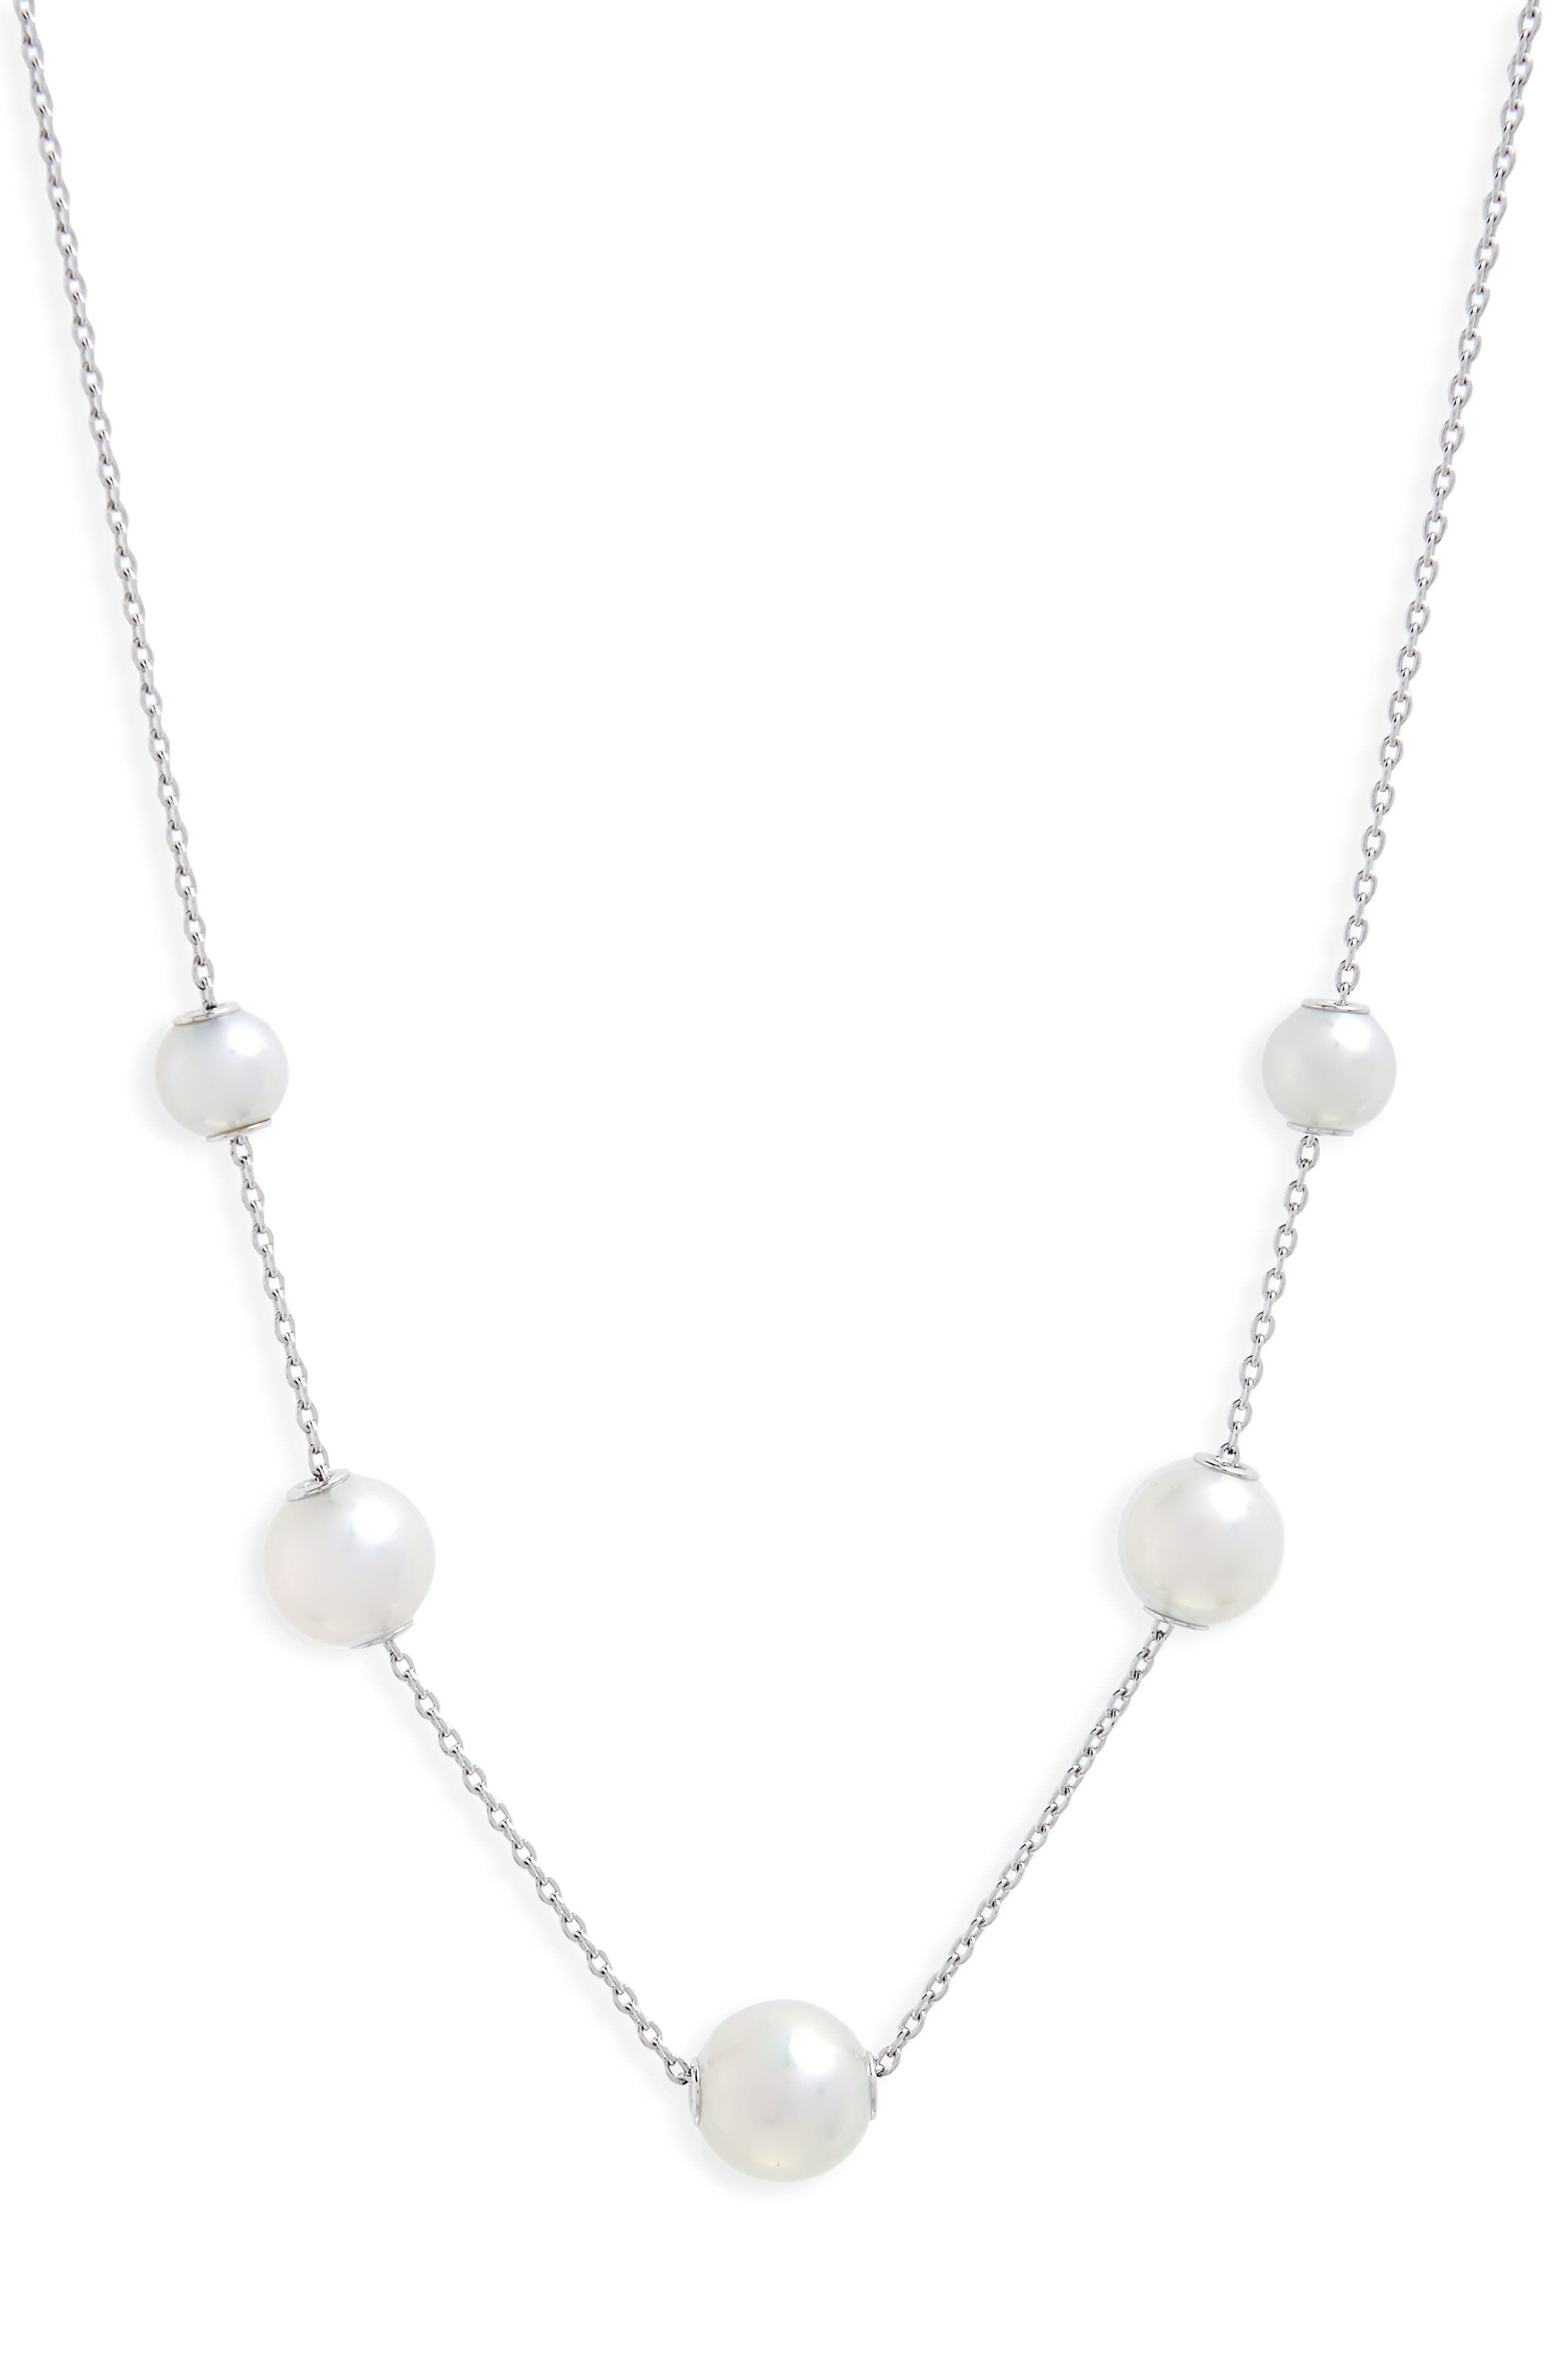 MIKIMOTO GRADUATED PEARL STATION NECKLACE